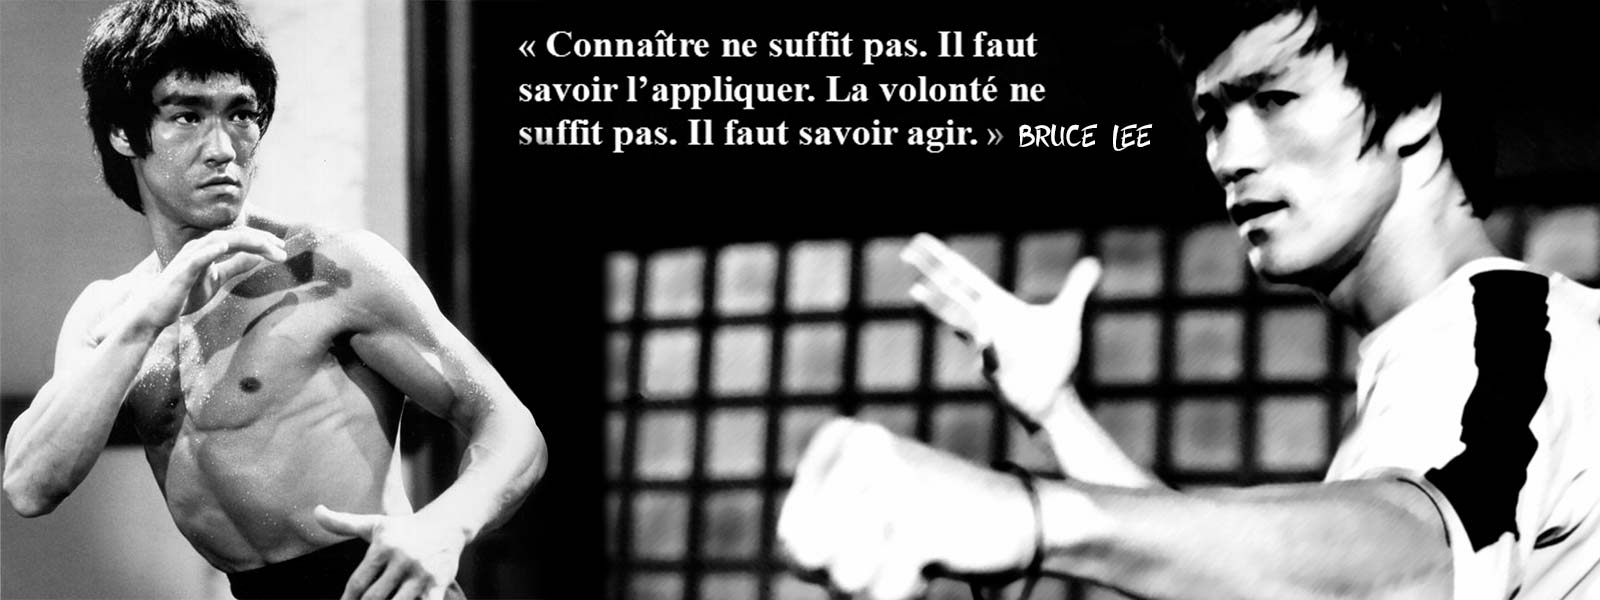 Bruce Lee citation